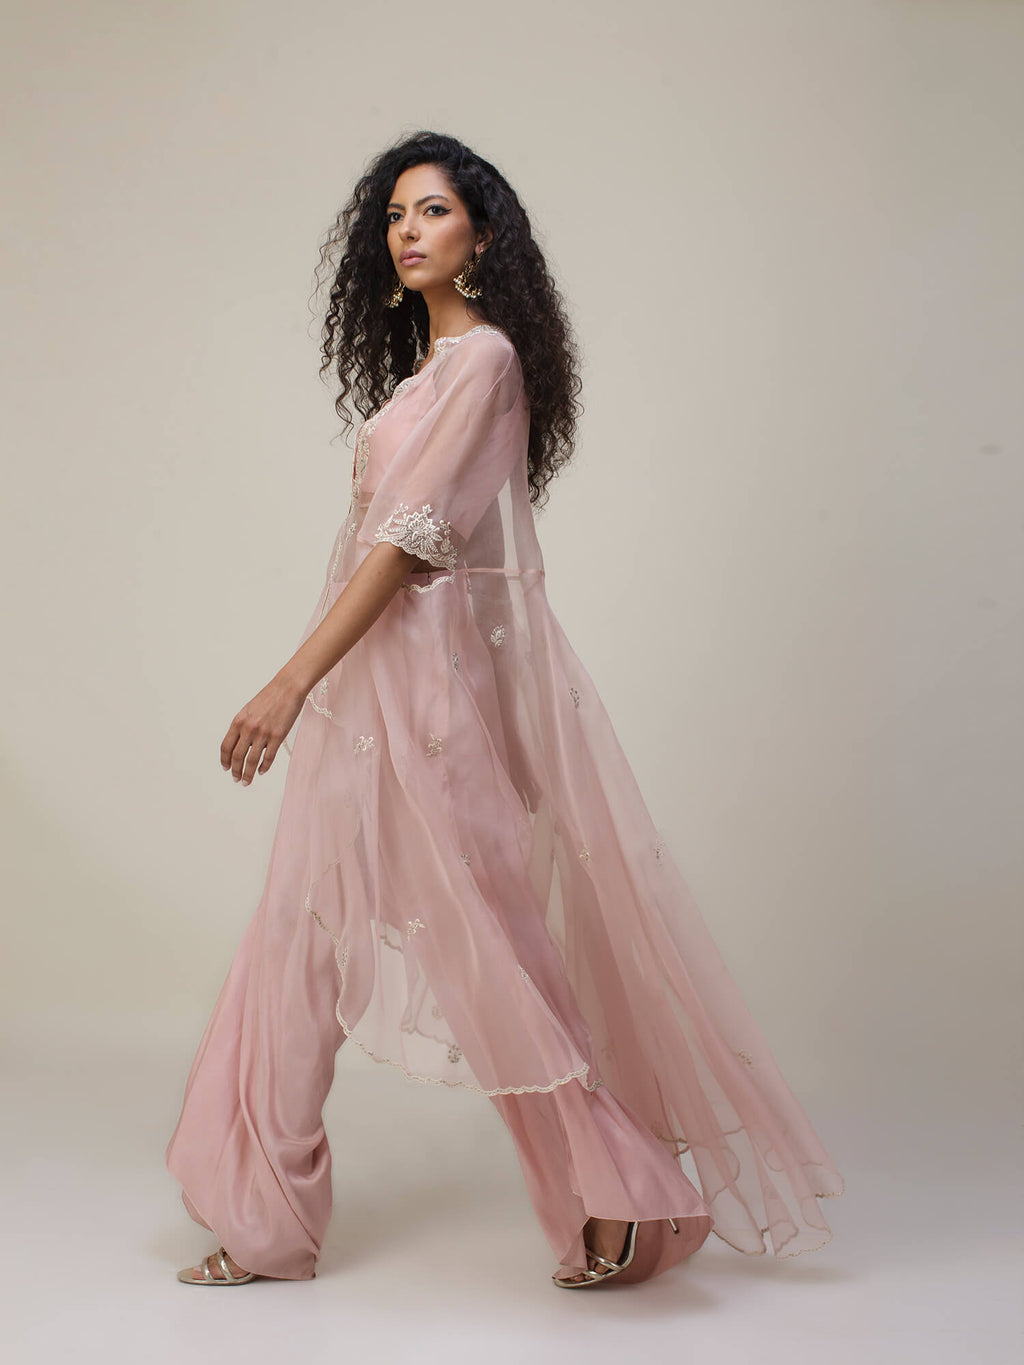 Anika Cape W/ Choli & Loose Pants - Misha Lakhani